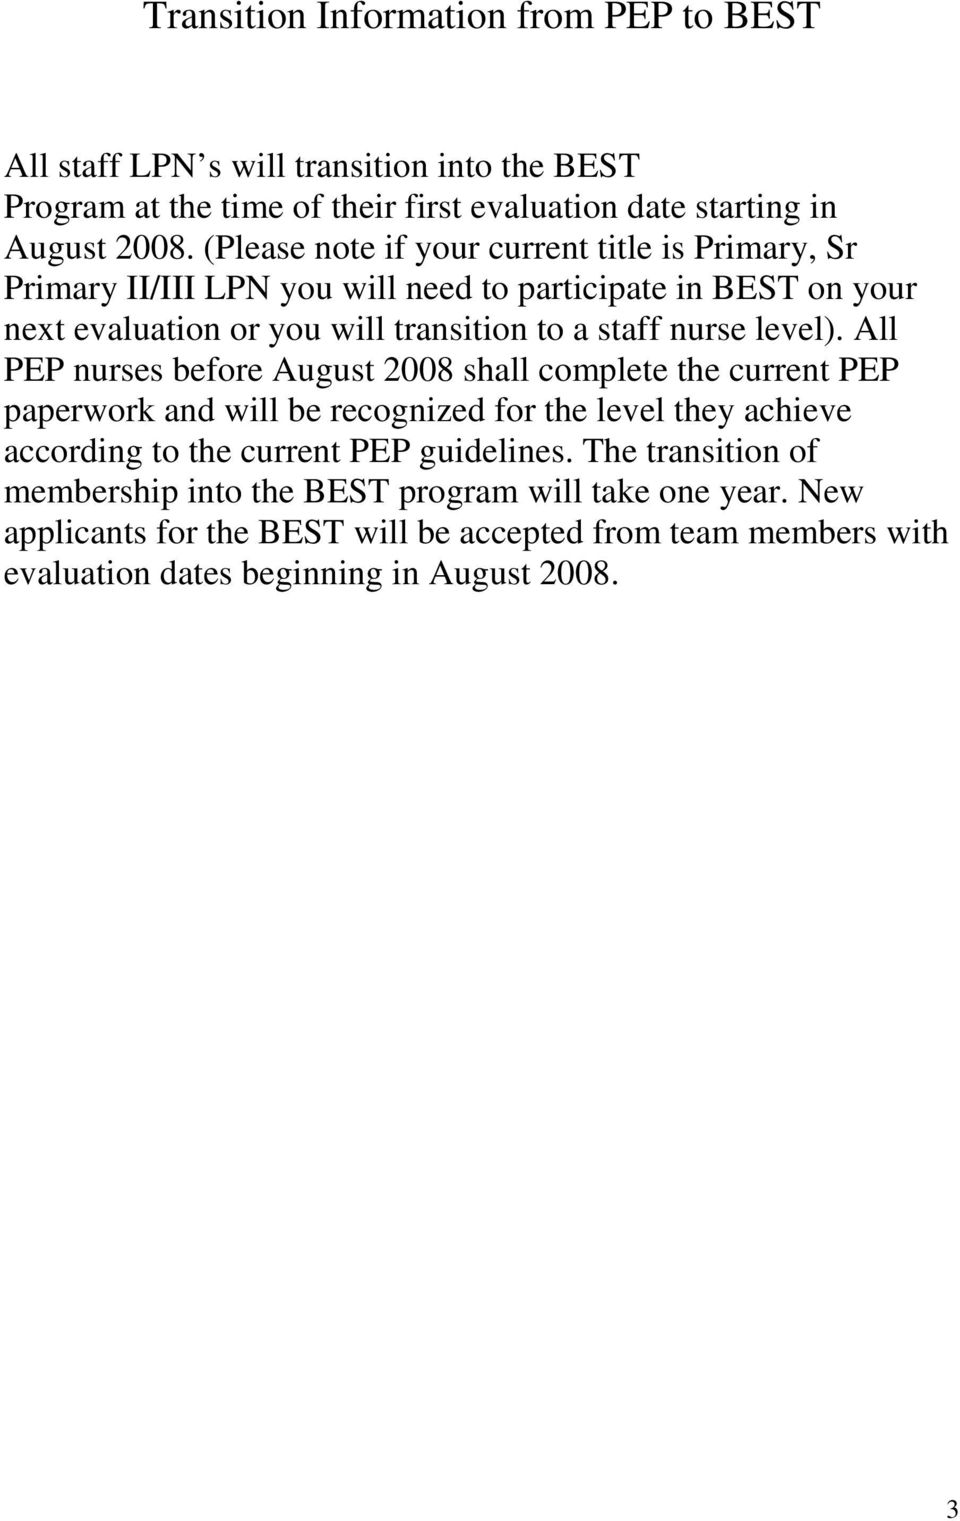 level). All PEP nurses before August 2008 shall complete the current PEP paperwork and will be recognized for the level they achieve according to the current PEP guidelines.